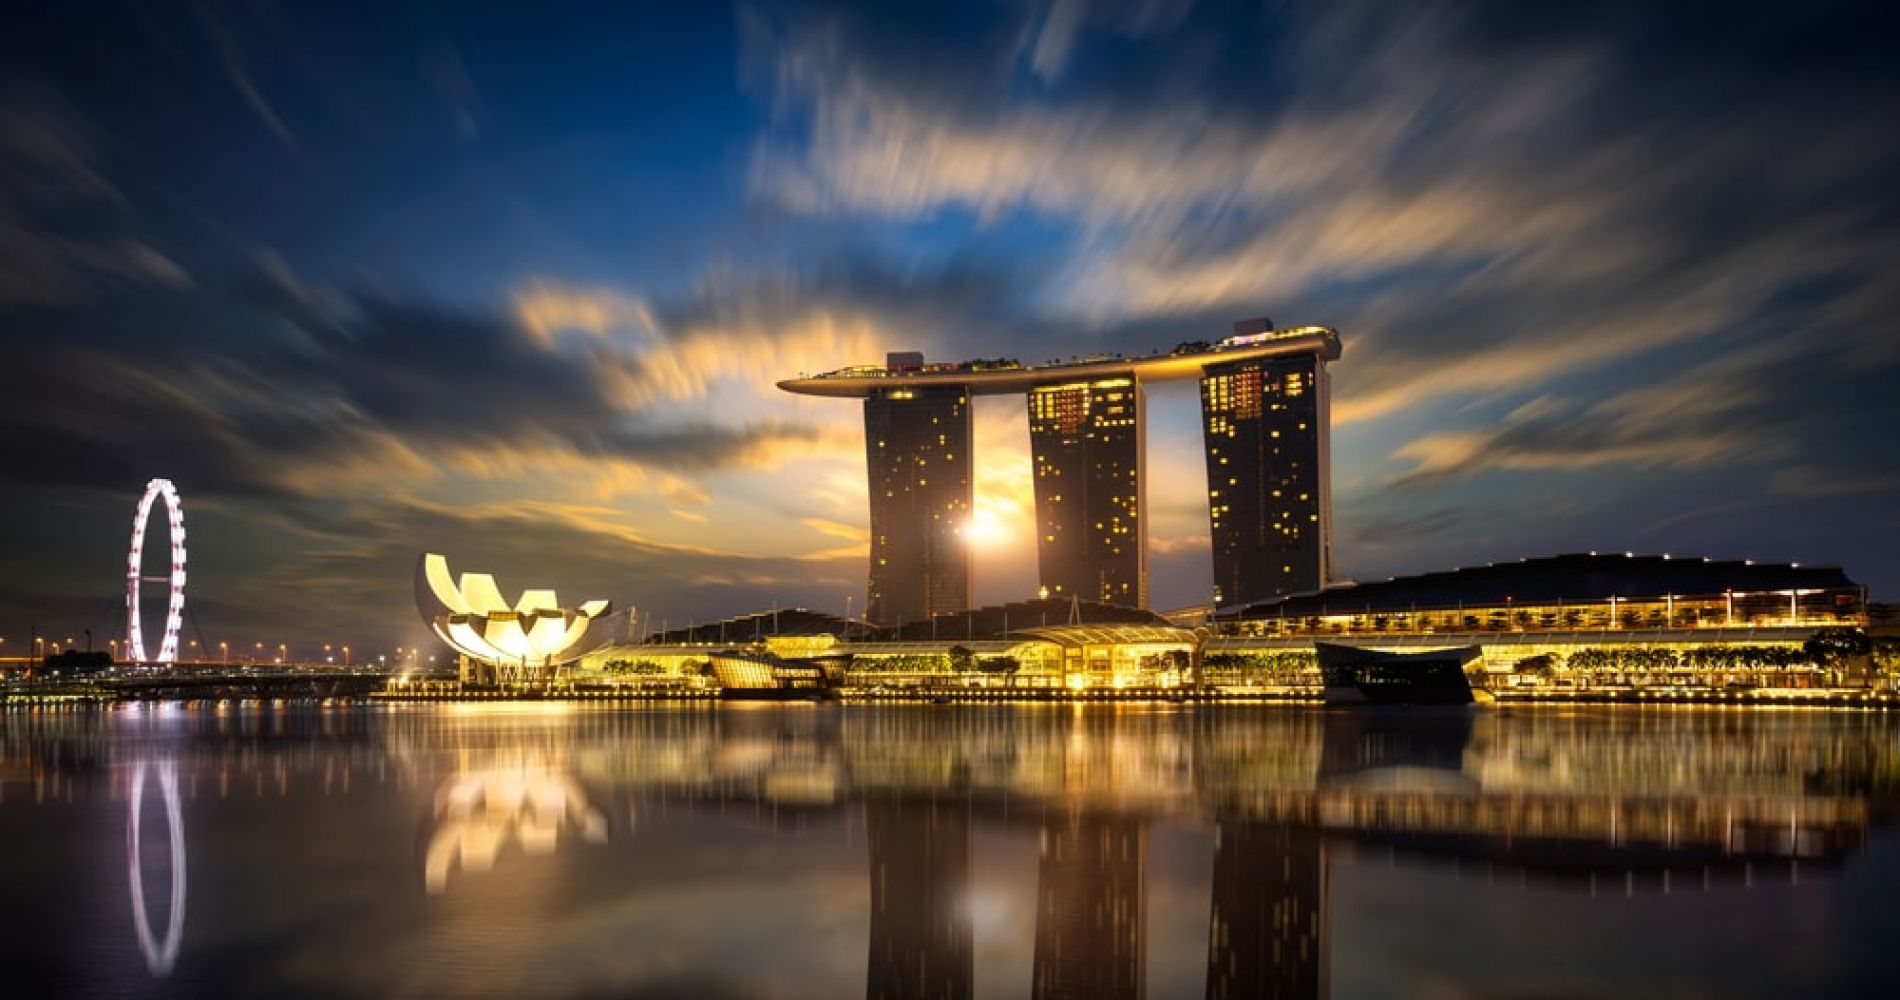 Watch sunrise above Marina Bay Sands in Singapore